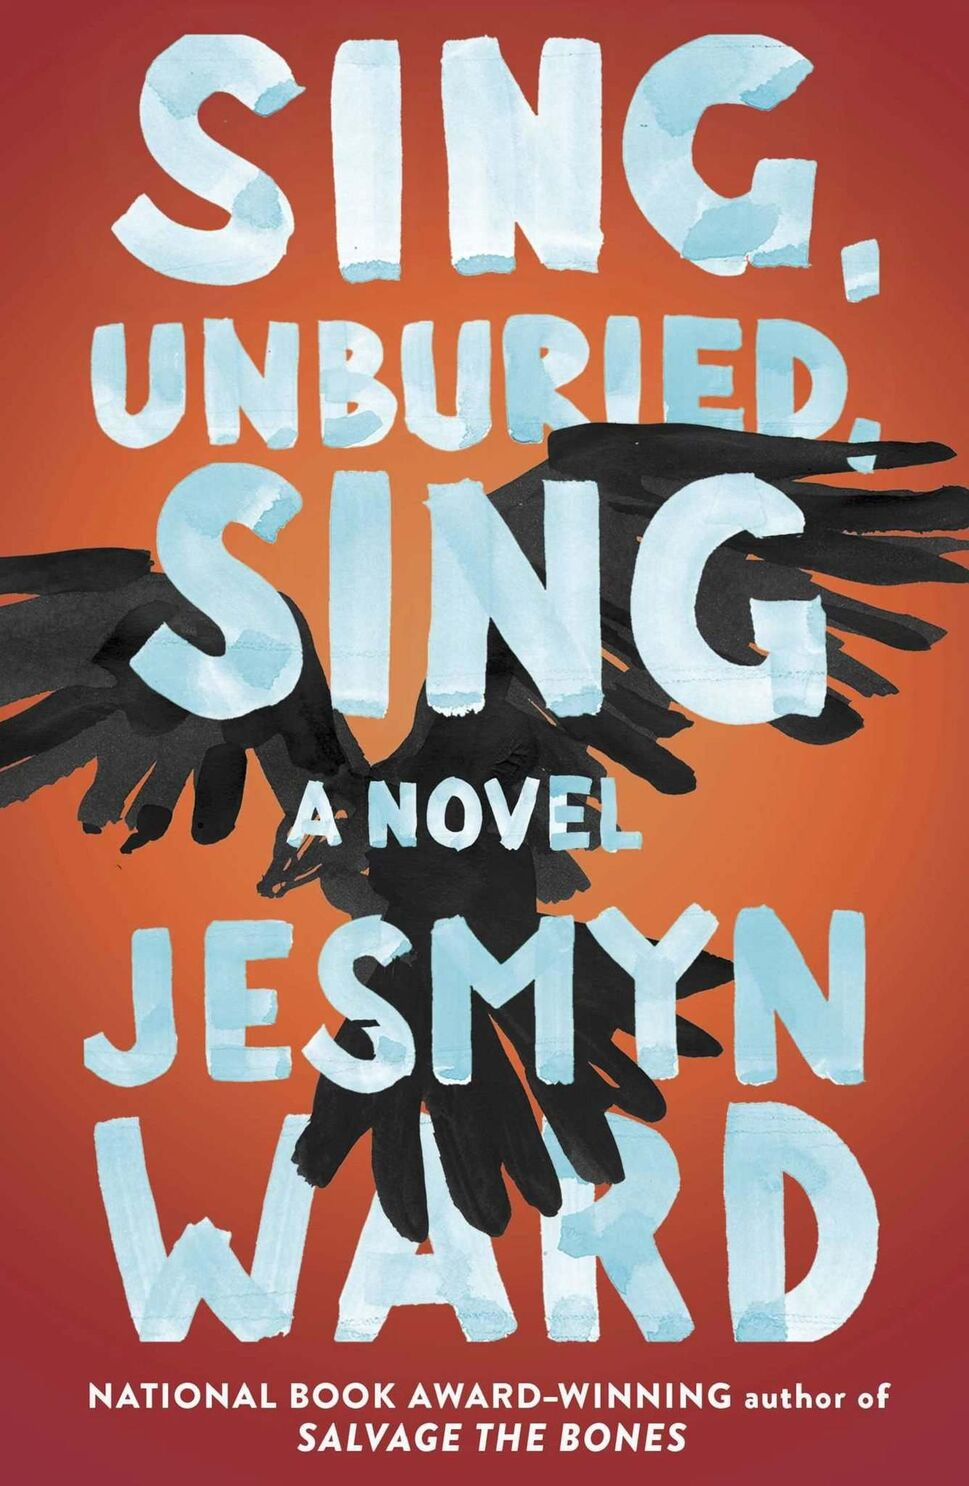 Sing, Unburied, Sing</p><p>By Jesmyn Ward</p><p>Scribner, Sept. 5</p><p>The U.S. National Book Award winner (Salvage the Bones) returns with a tale of a black, drug-addicted mother who takes her two children on a road trip across Mississippi to see their white father when he is released from prison.</p>